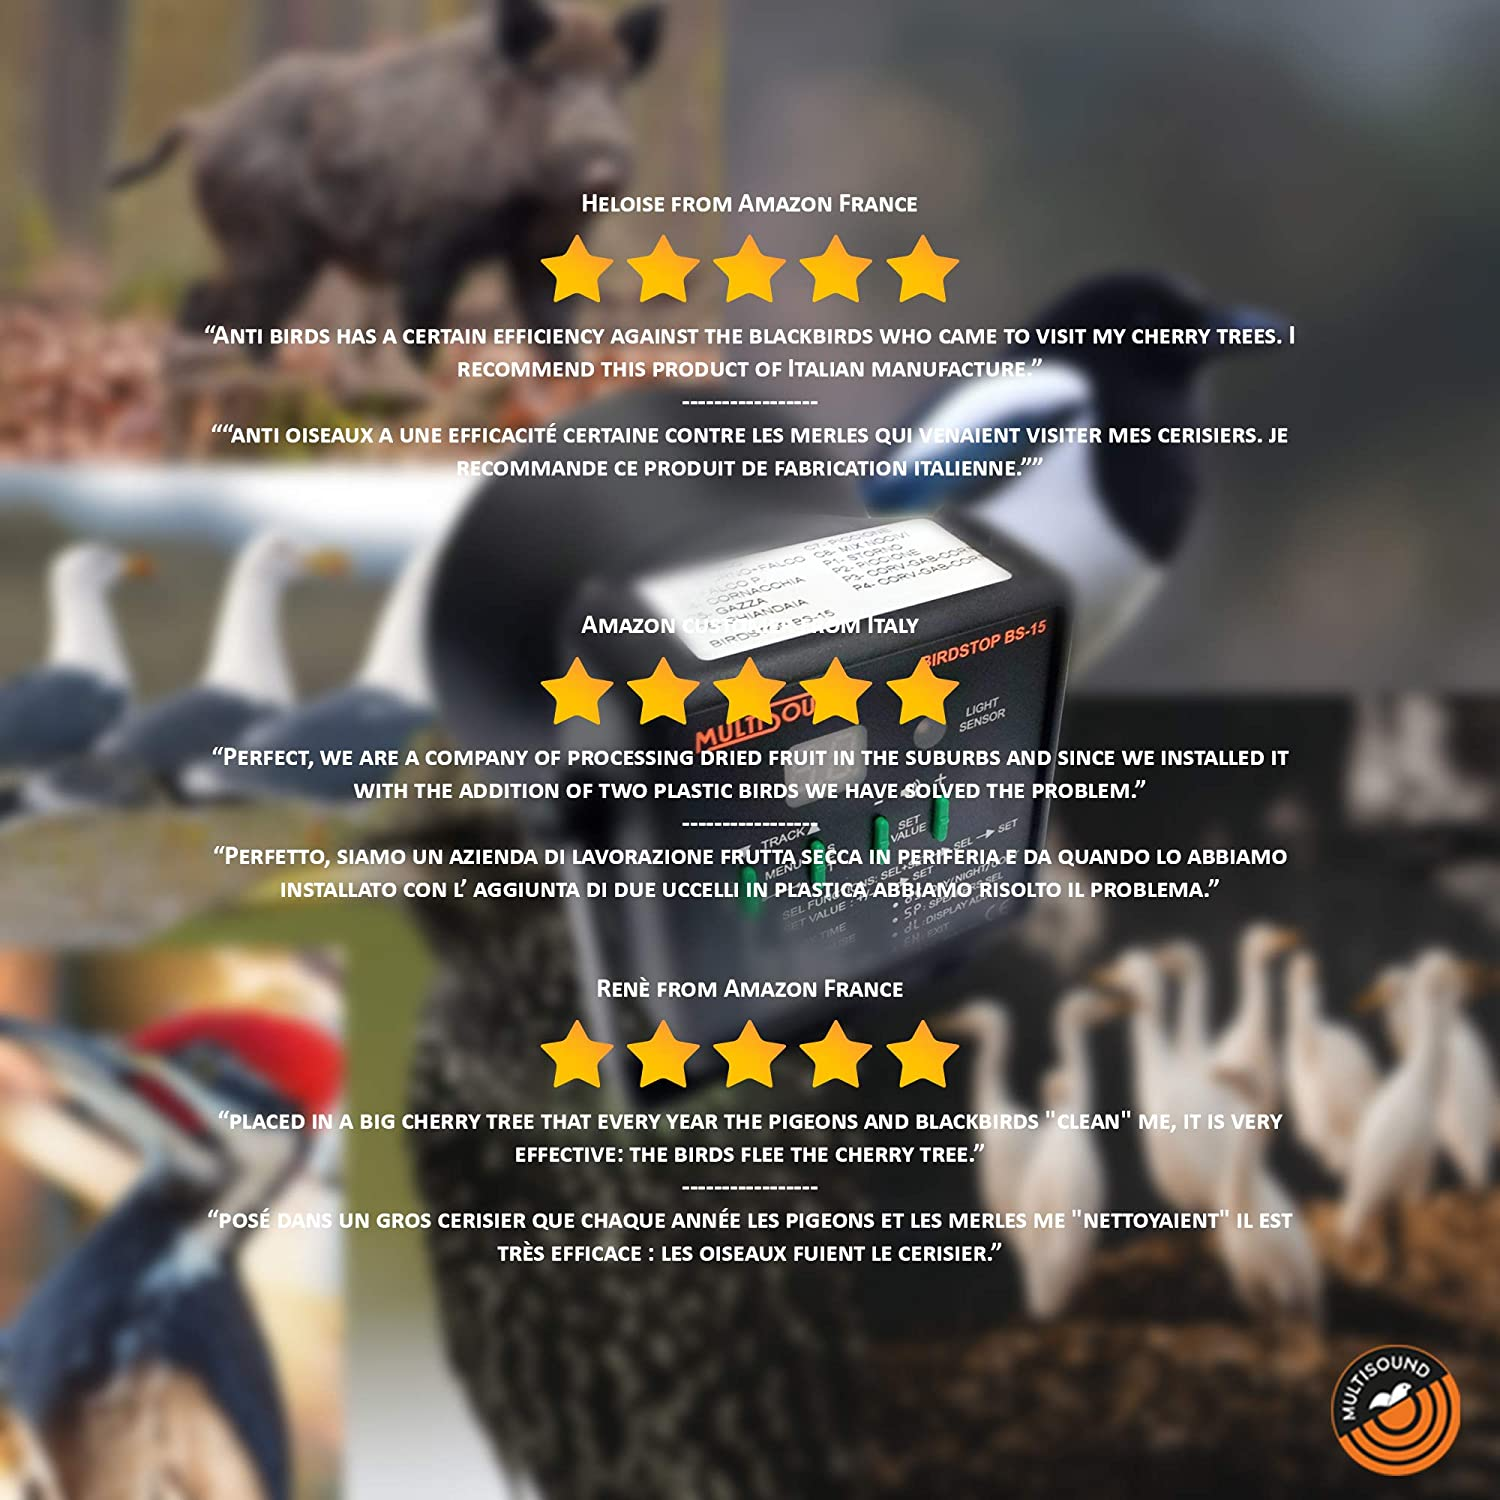 BS-15//A FARM 1 MultiSound BS-15 - Sonic Bird Repeller for Pigeons, Starlings, Seagulls, Magpie, Crow. Audible Birds Scarer that eliminates the problem of harmful birds in a natural way.